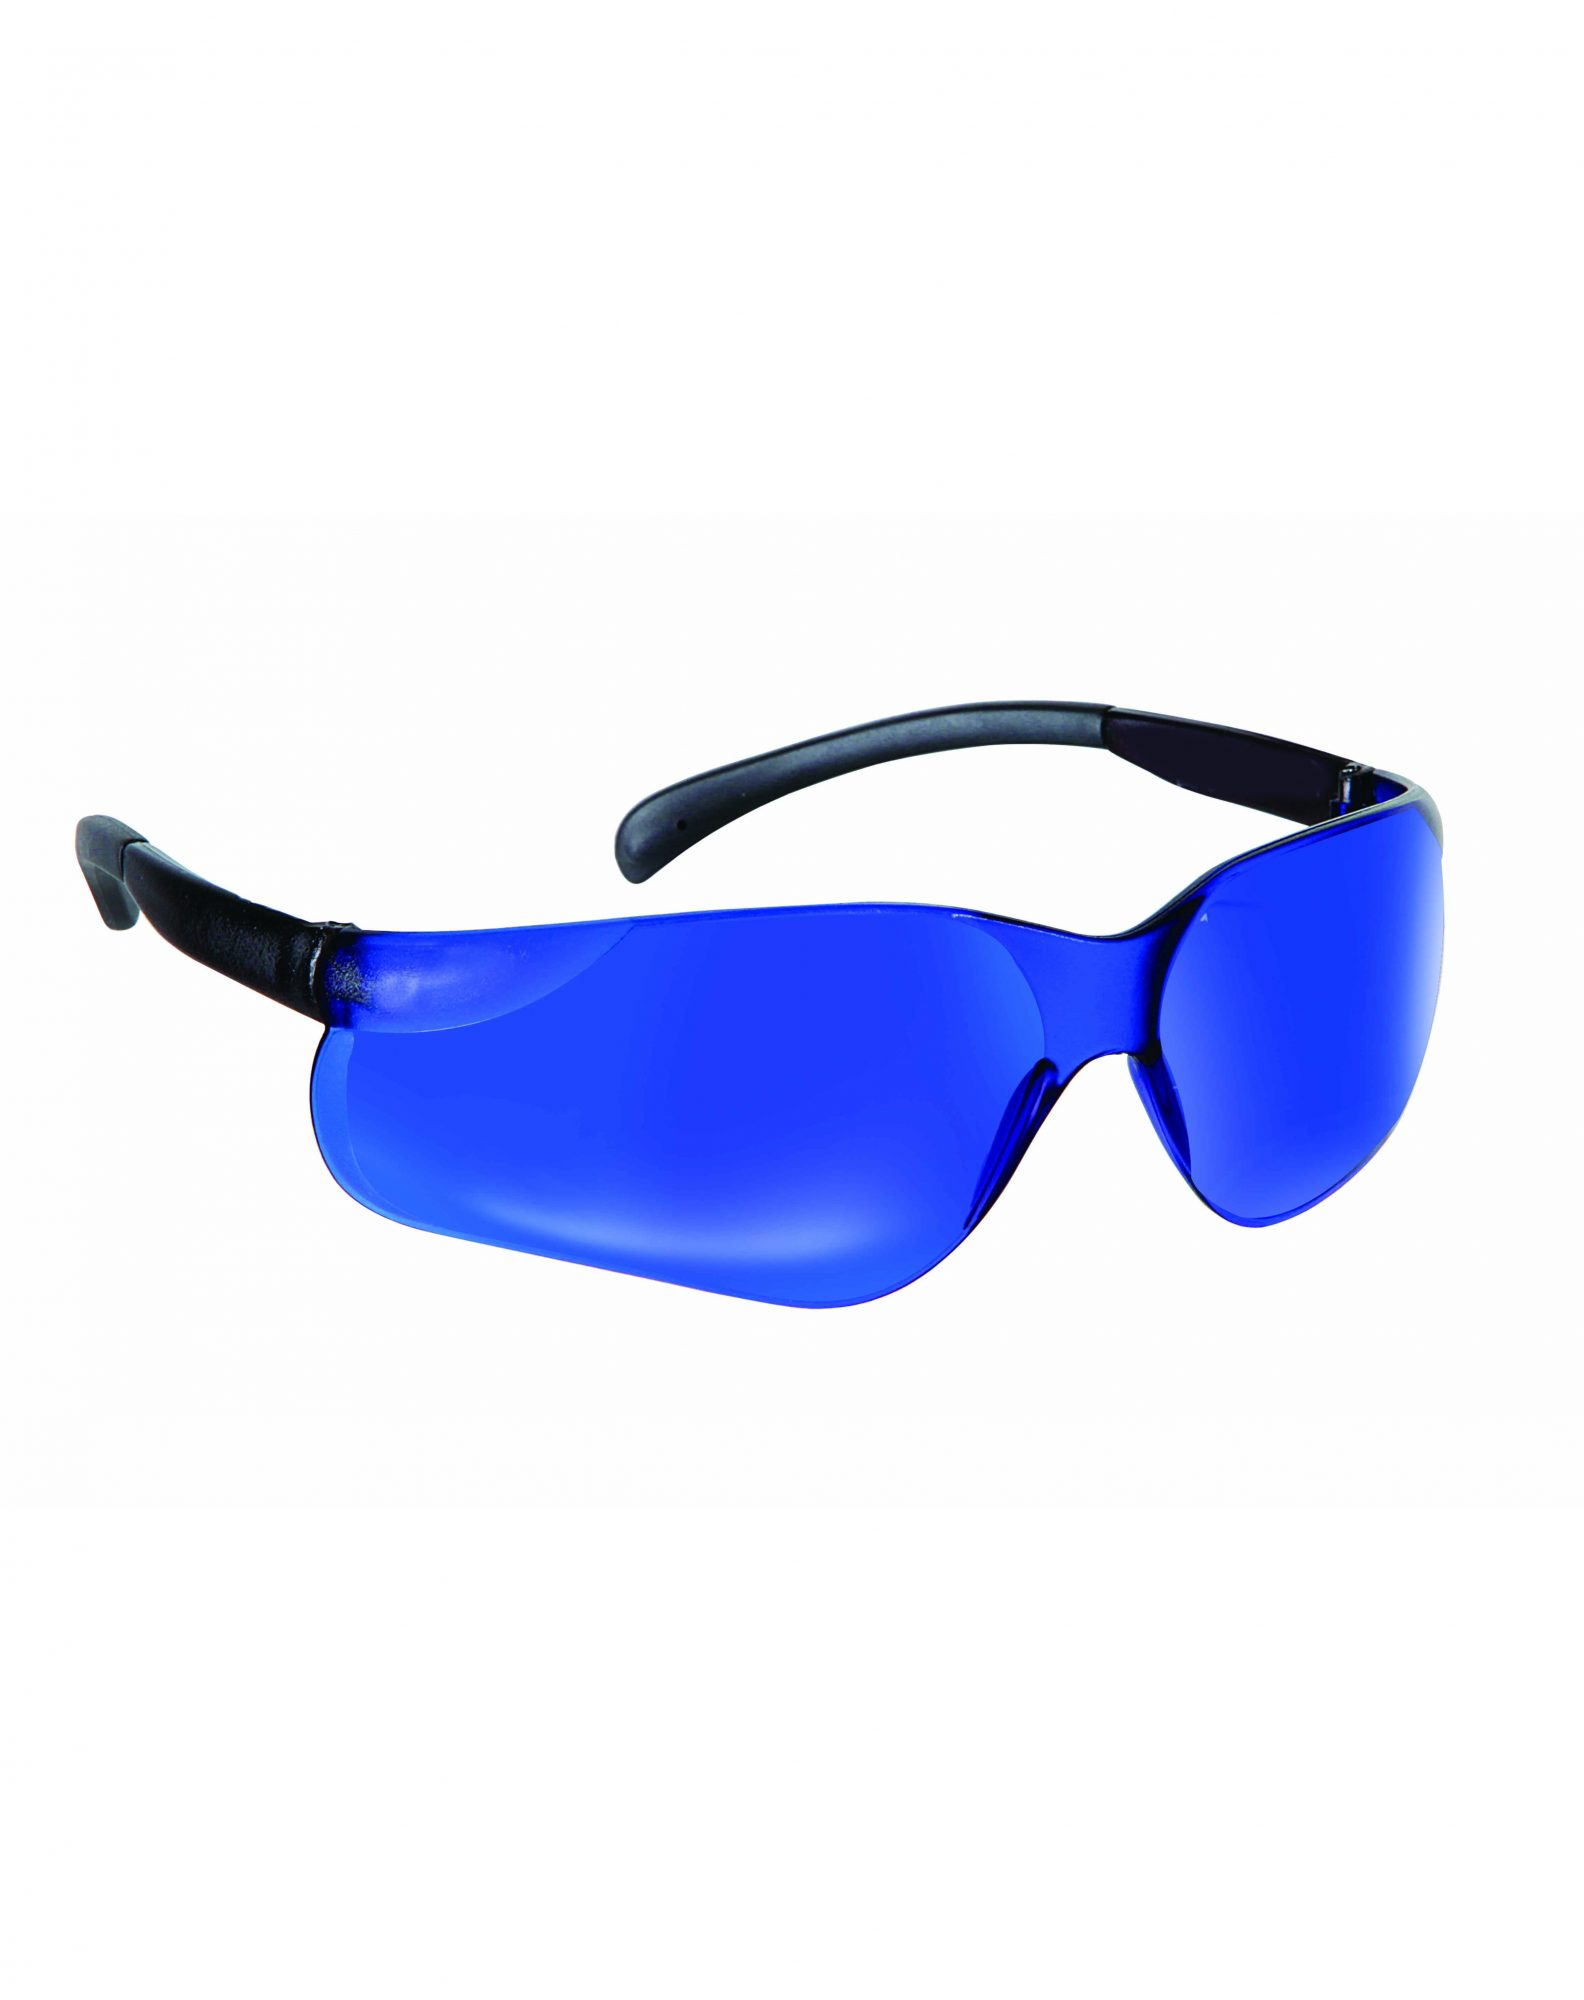 The Golf Ball Locating Glasses